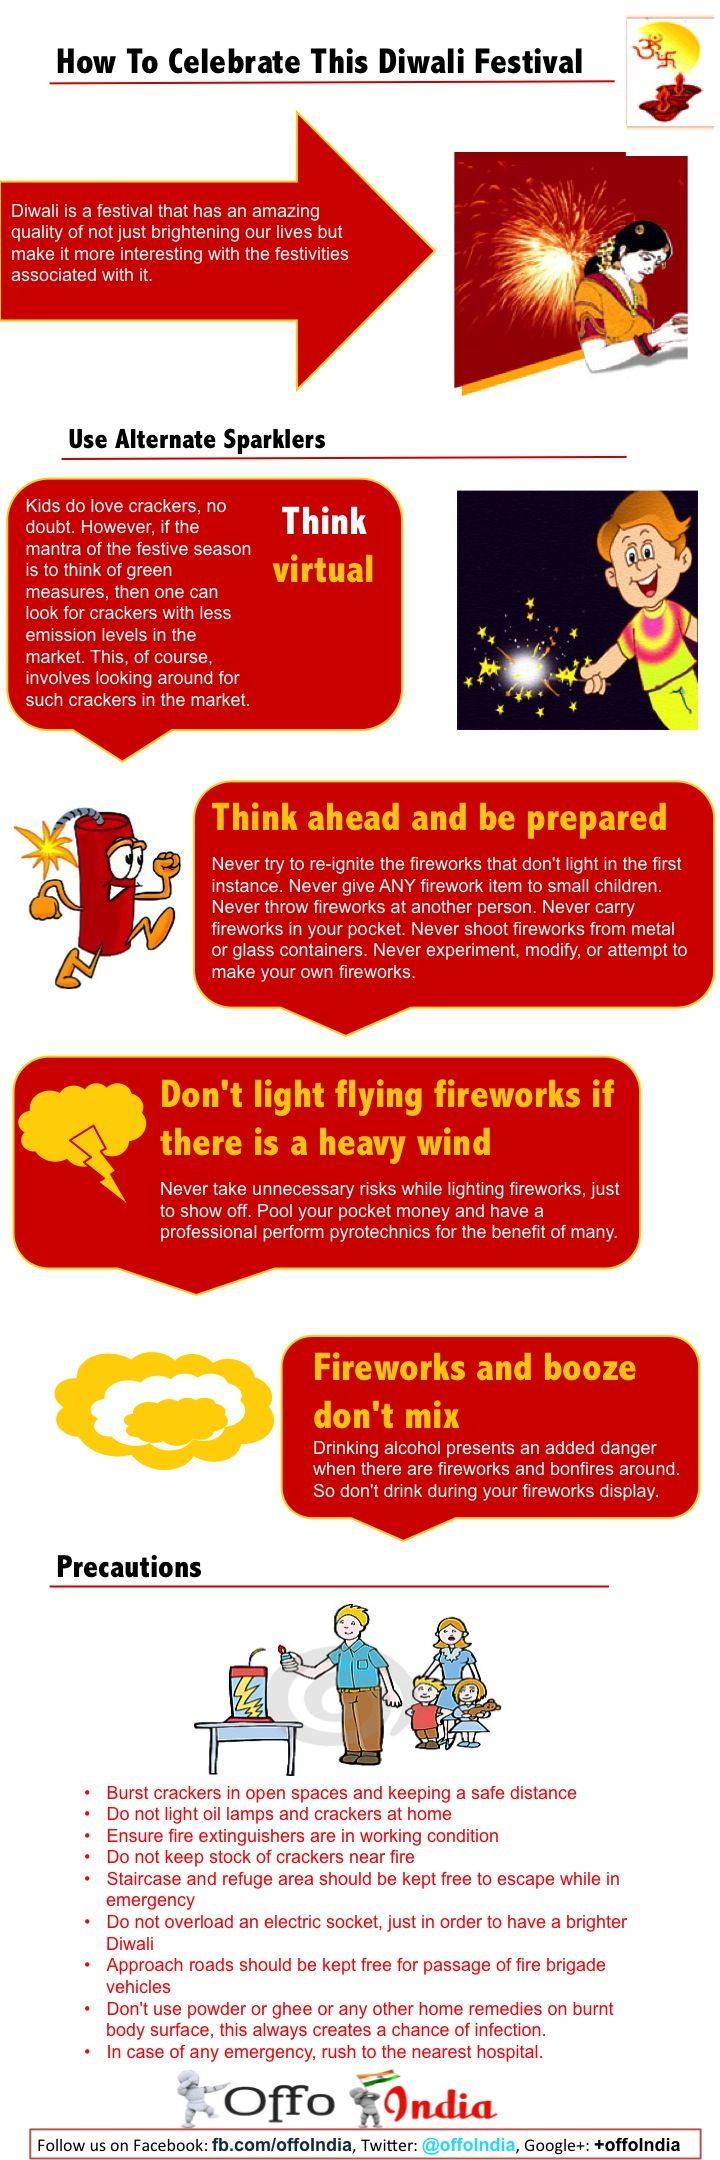 Safety precautions during Diwali